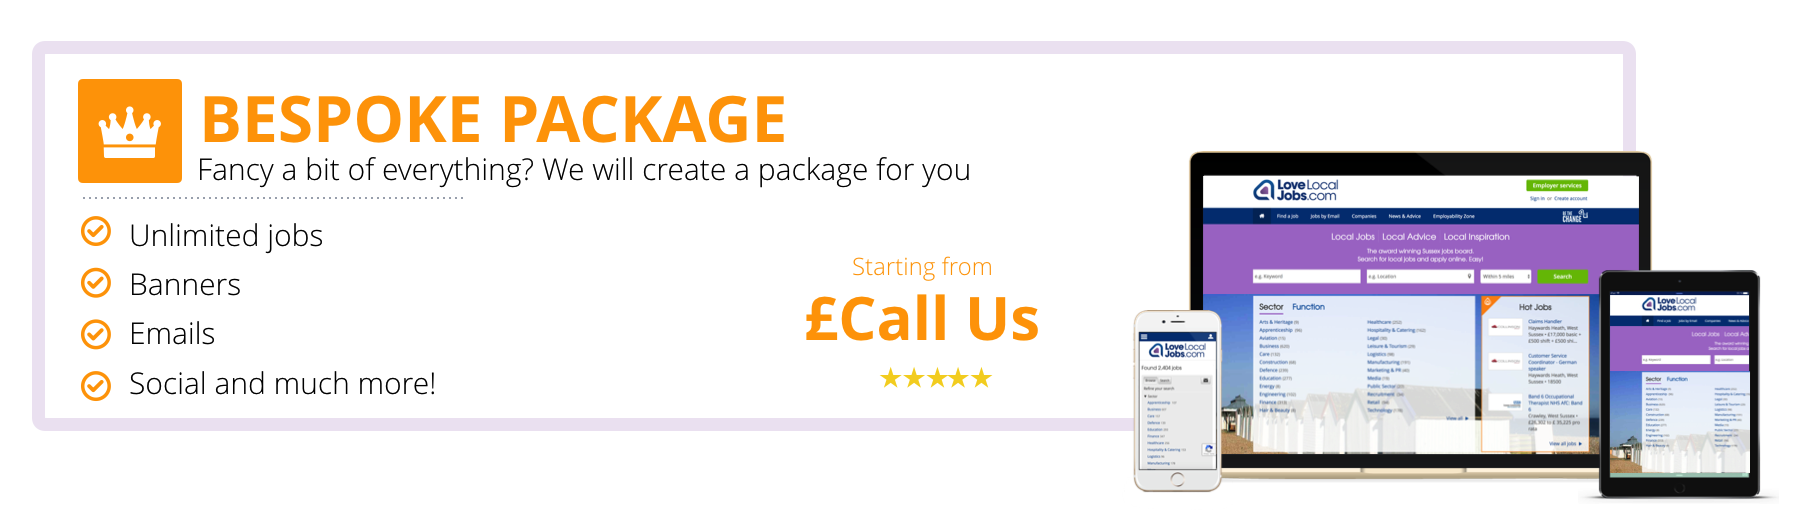 Bespoke packages